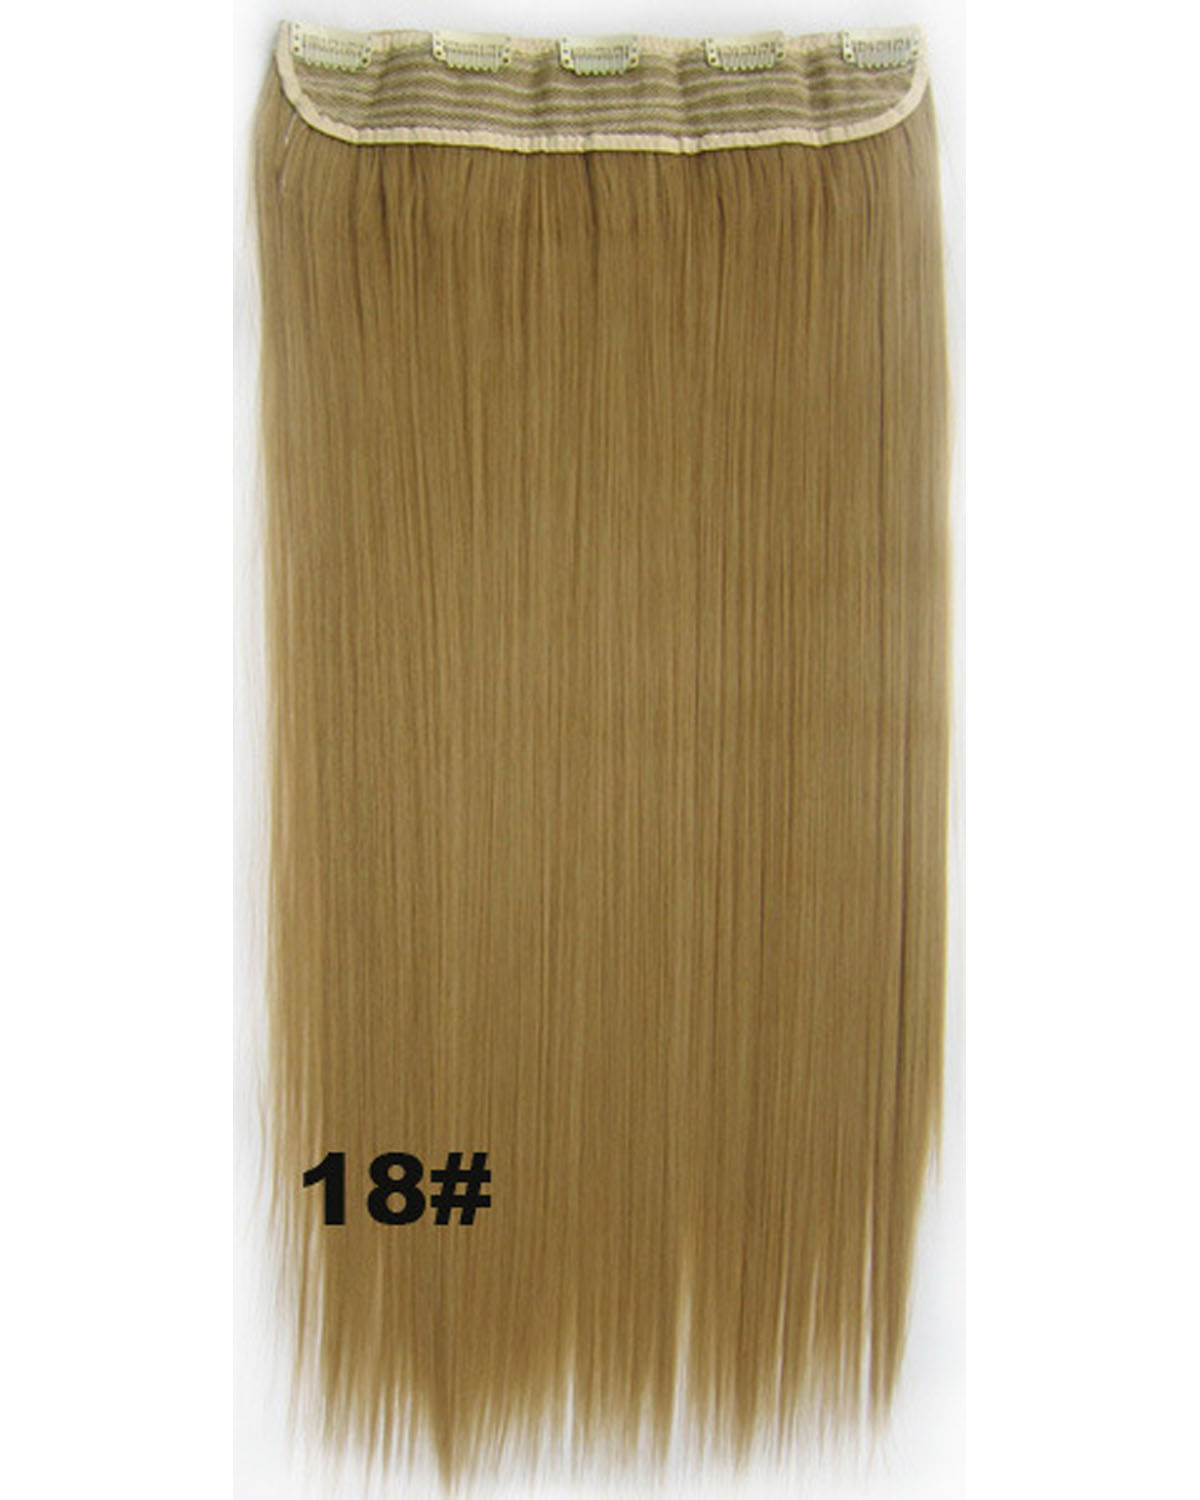 24 Inch Women Hot-sale and Fashional Straight Long One Piece 5 Clips Clip in Synthetic Hair 18#